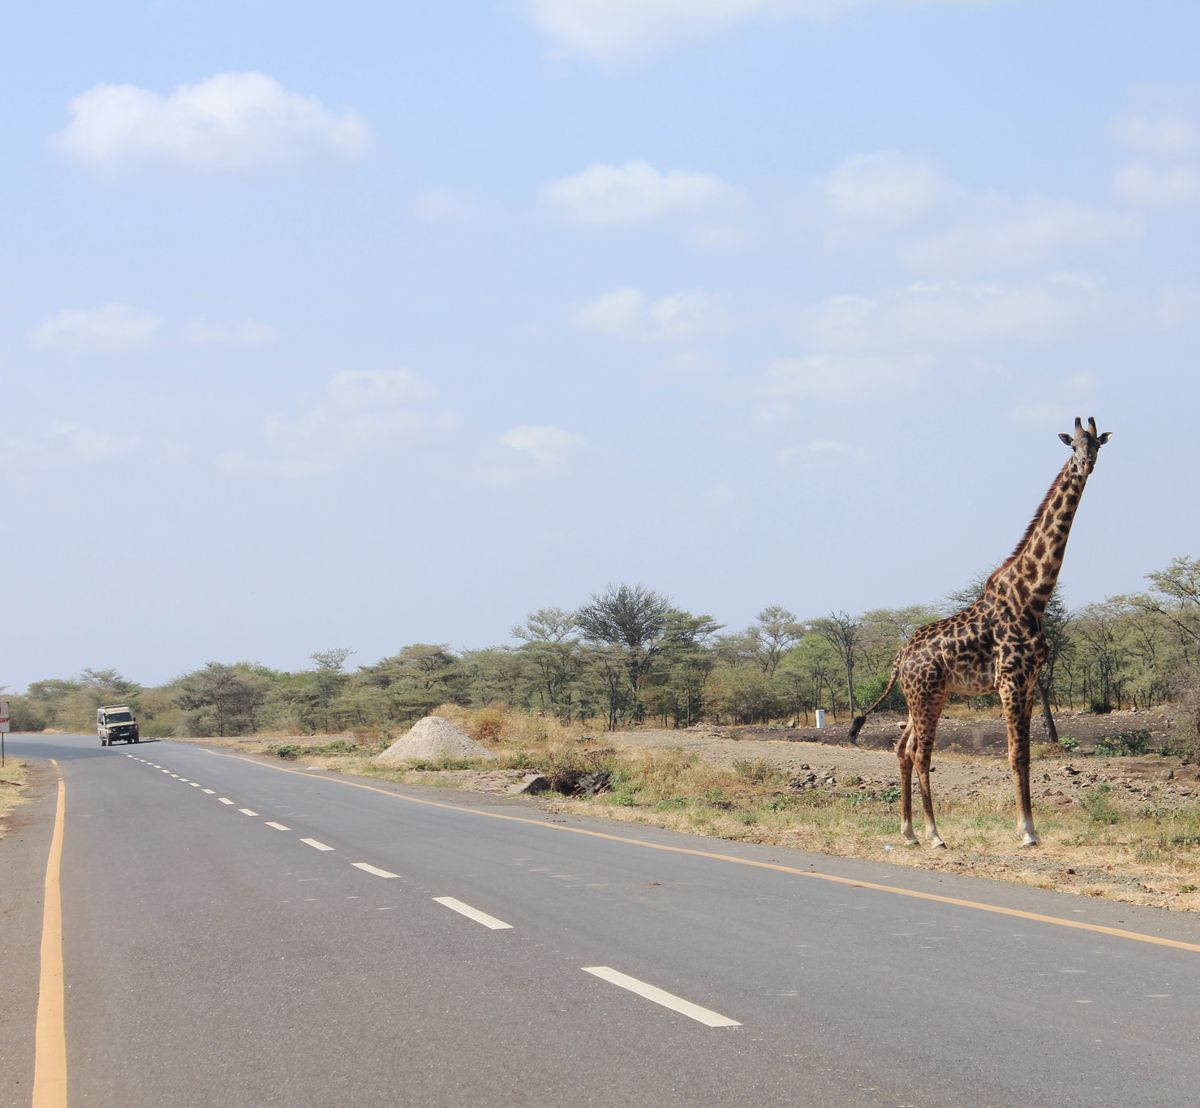 Tanzania's Magole to Turiani Highway will be completed on time